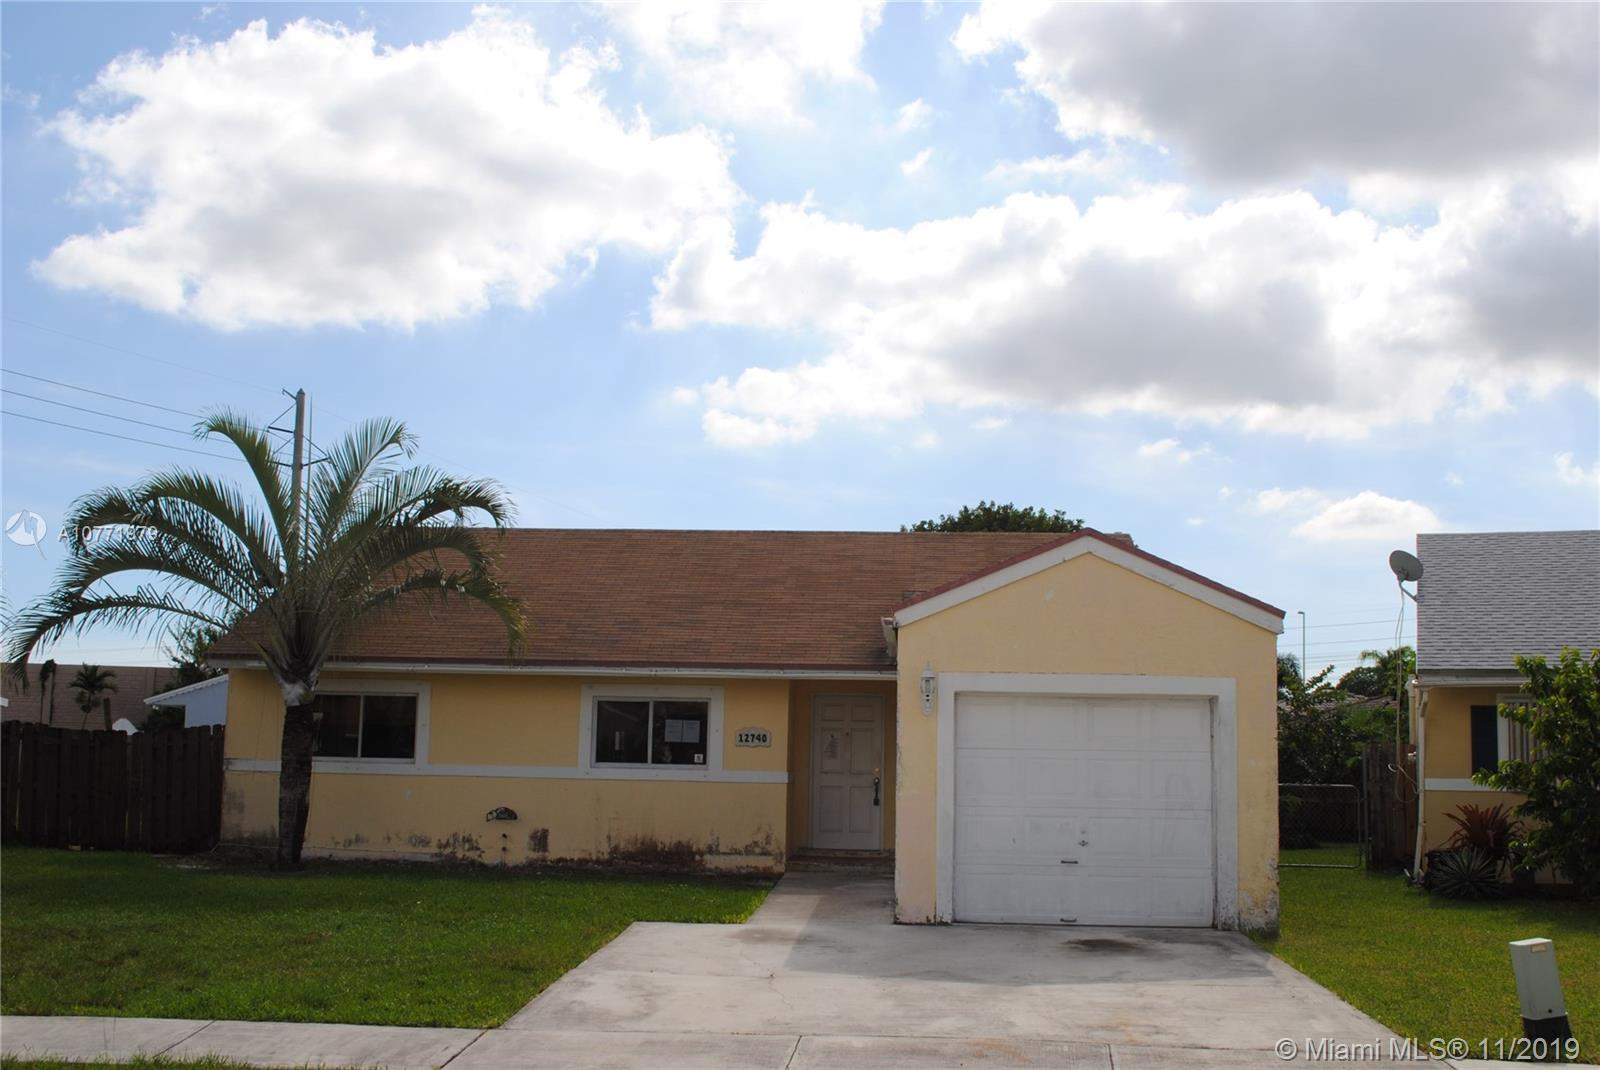 12740 SW 257th St, Homestead, FL 33032 - Homestead, FL real estate listing